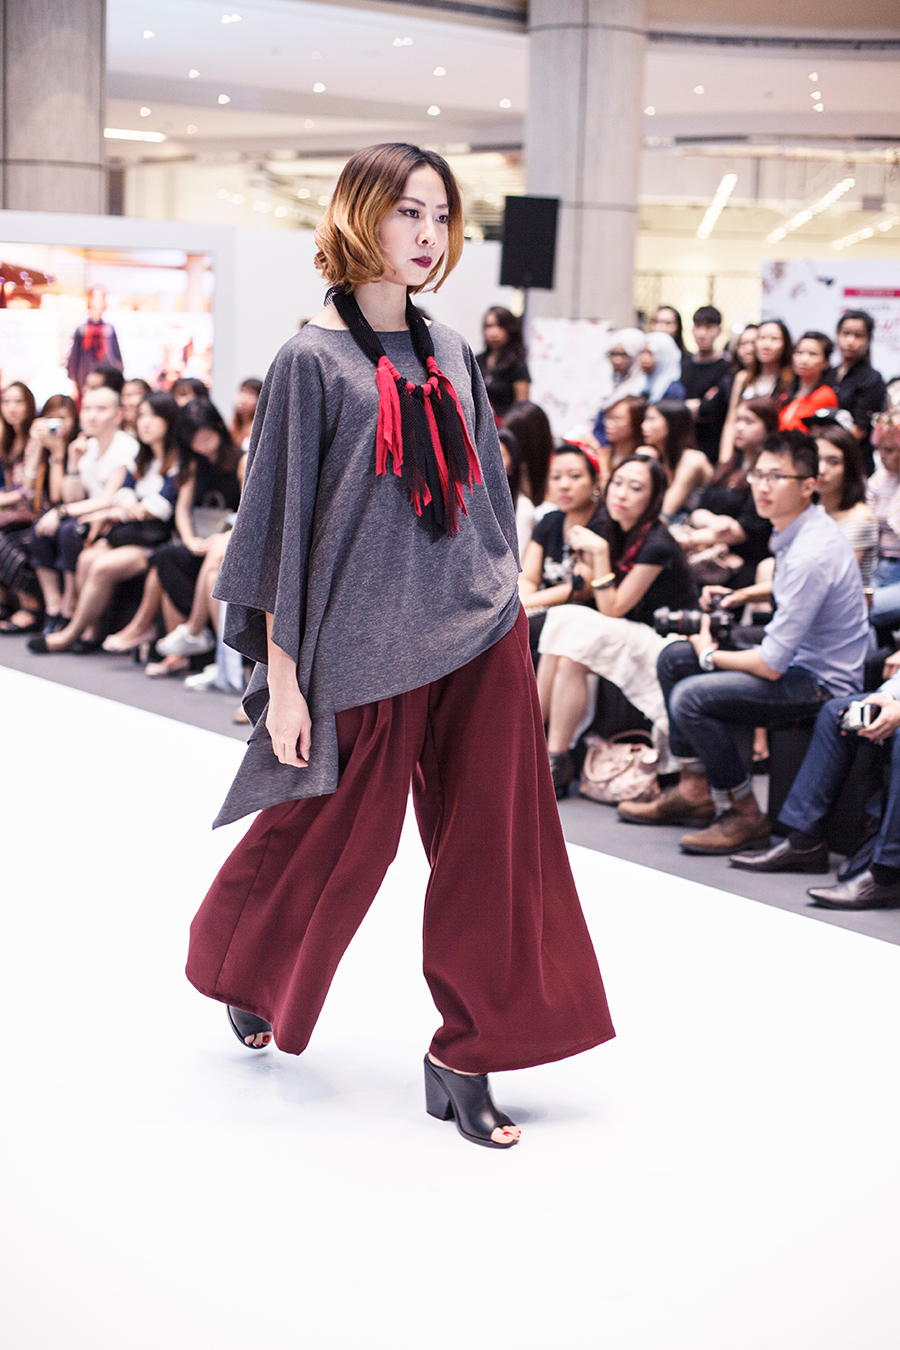 Free Spirit Catwalk at Clozette Style Party 2016 in Suntec City. #ClozetteStyleParty